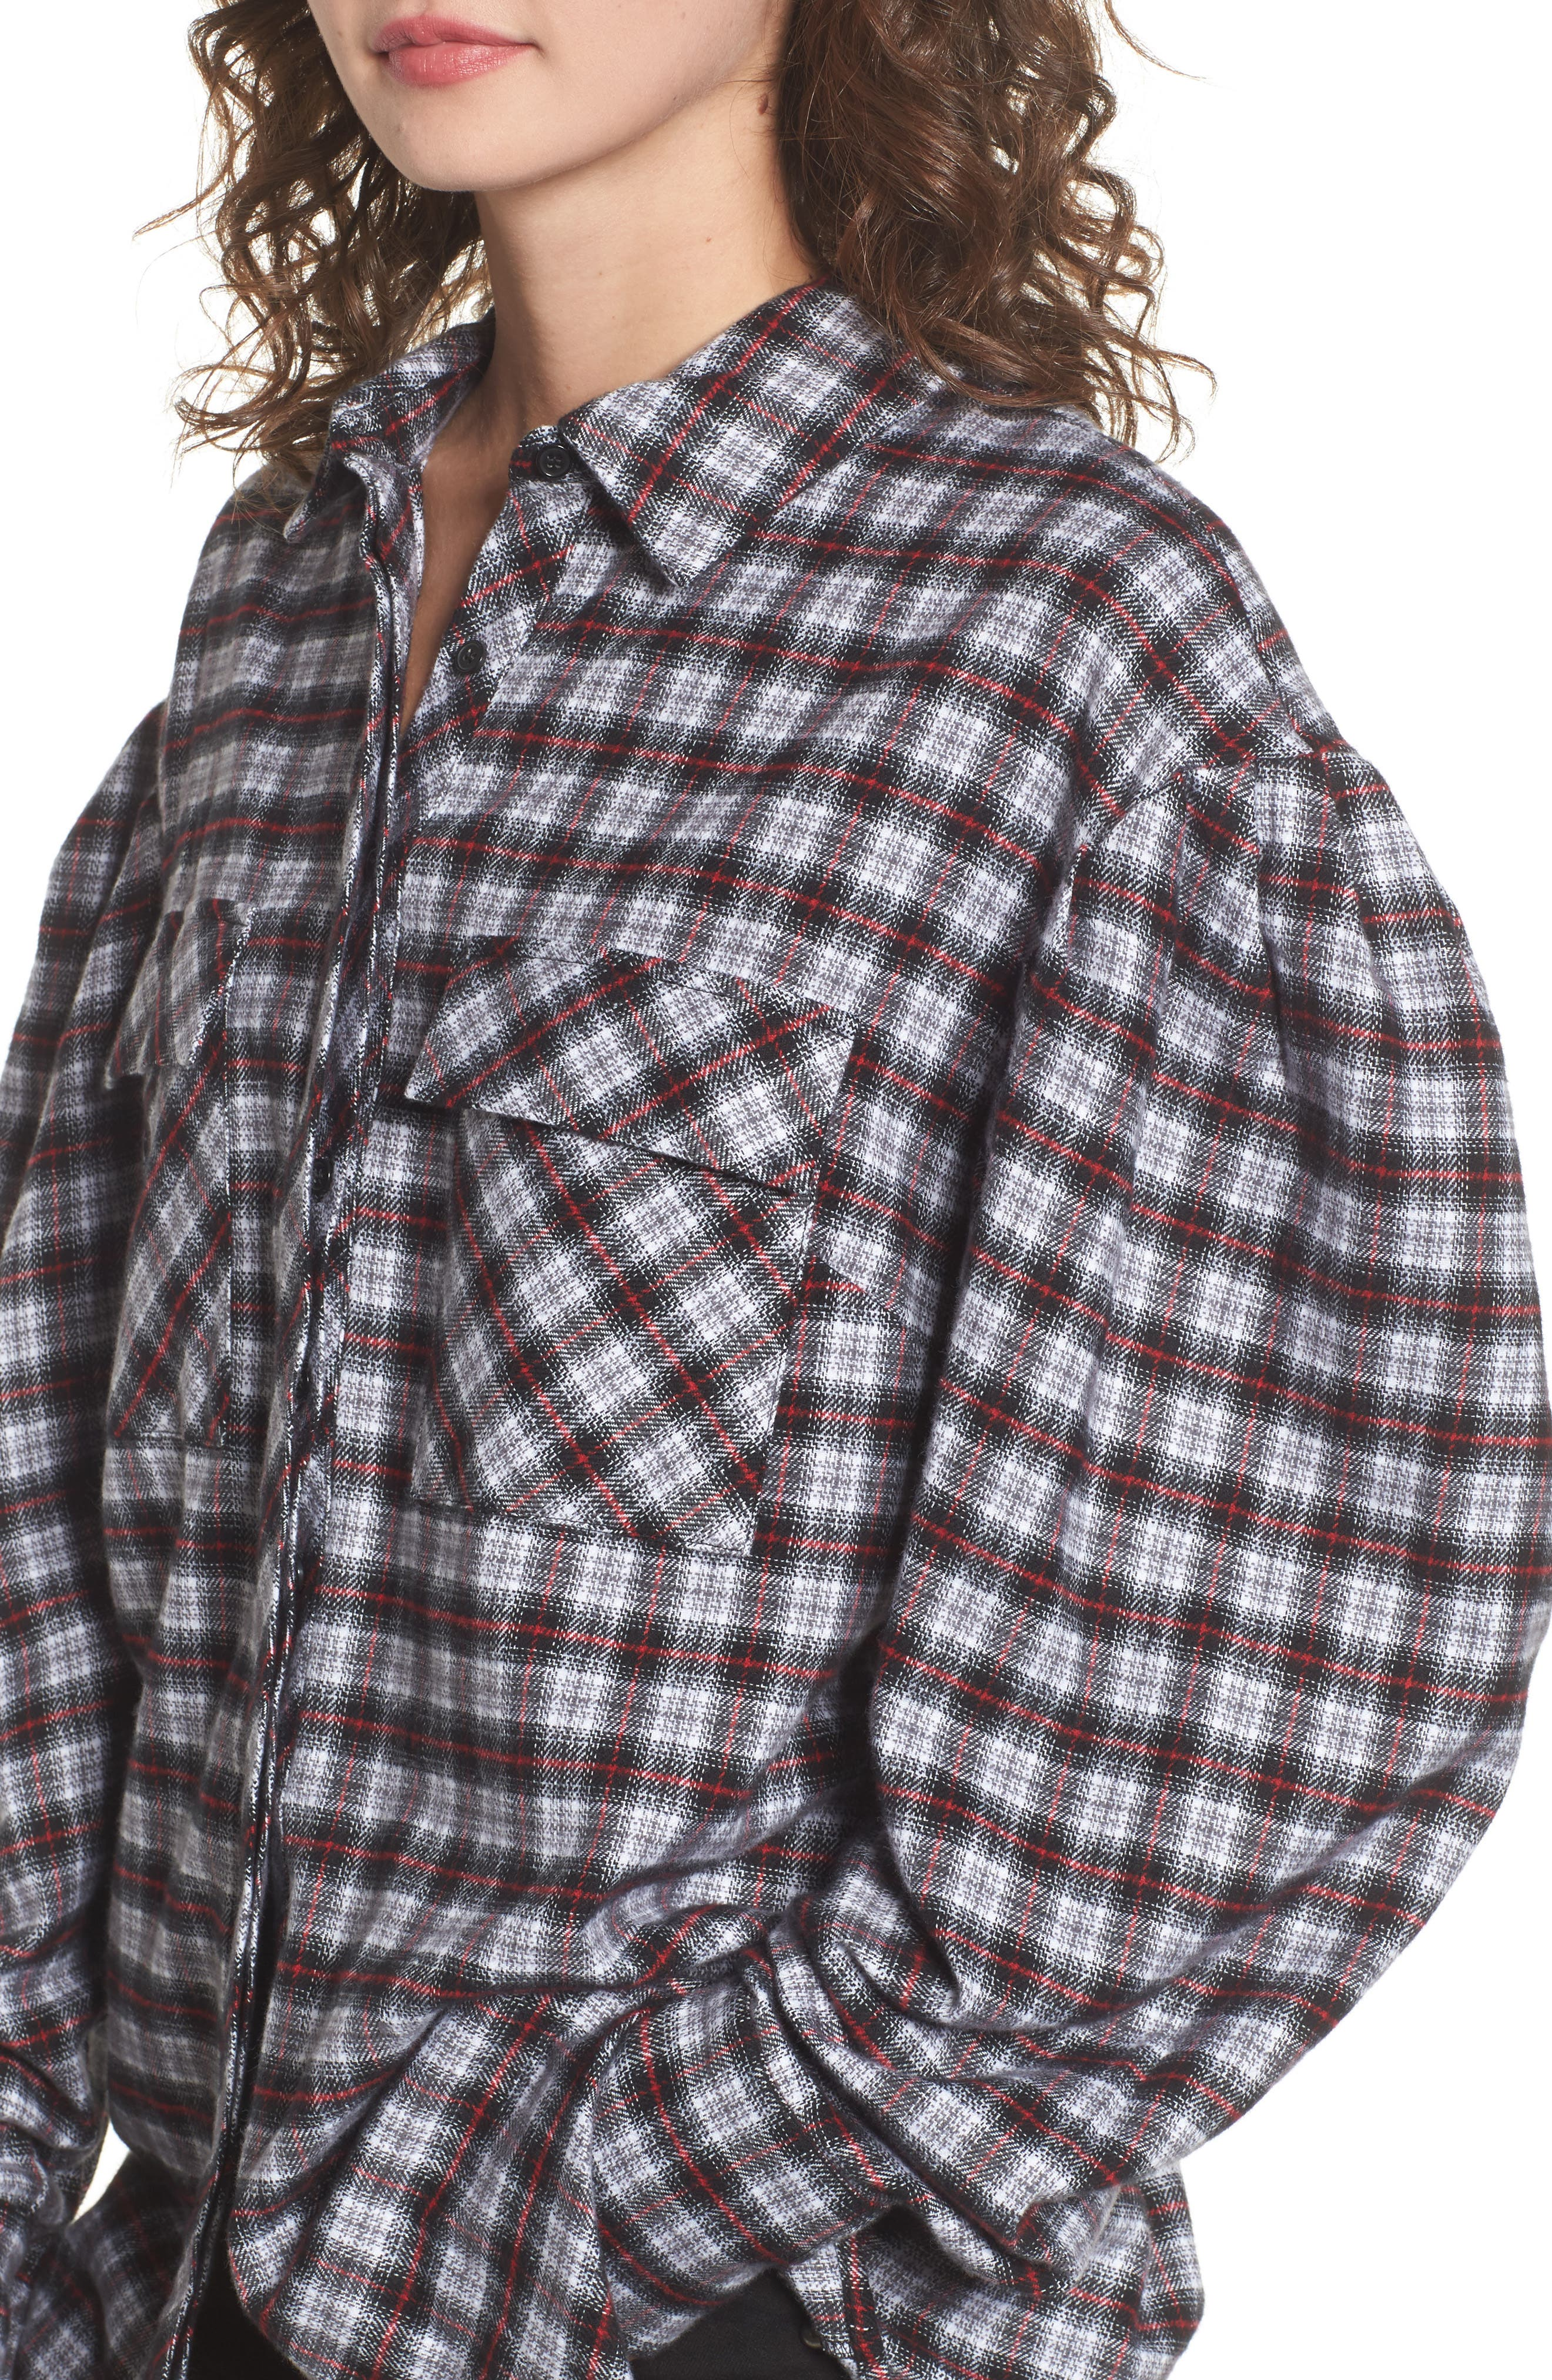 Victoria Oversize Flannel Shirt,                             Alternate thumbnail 4, color,                             001